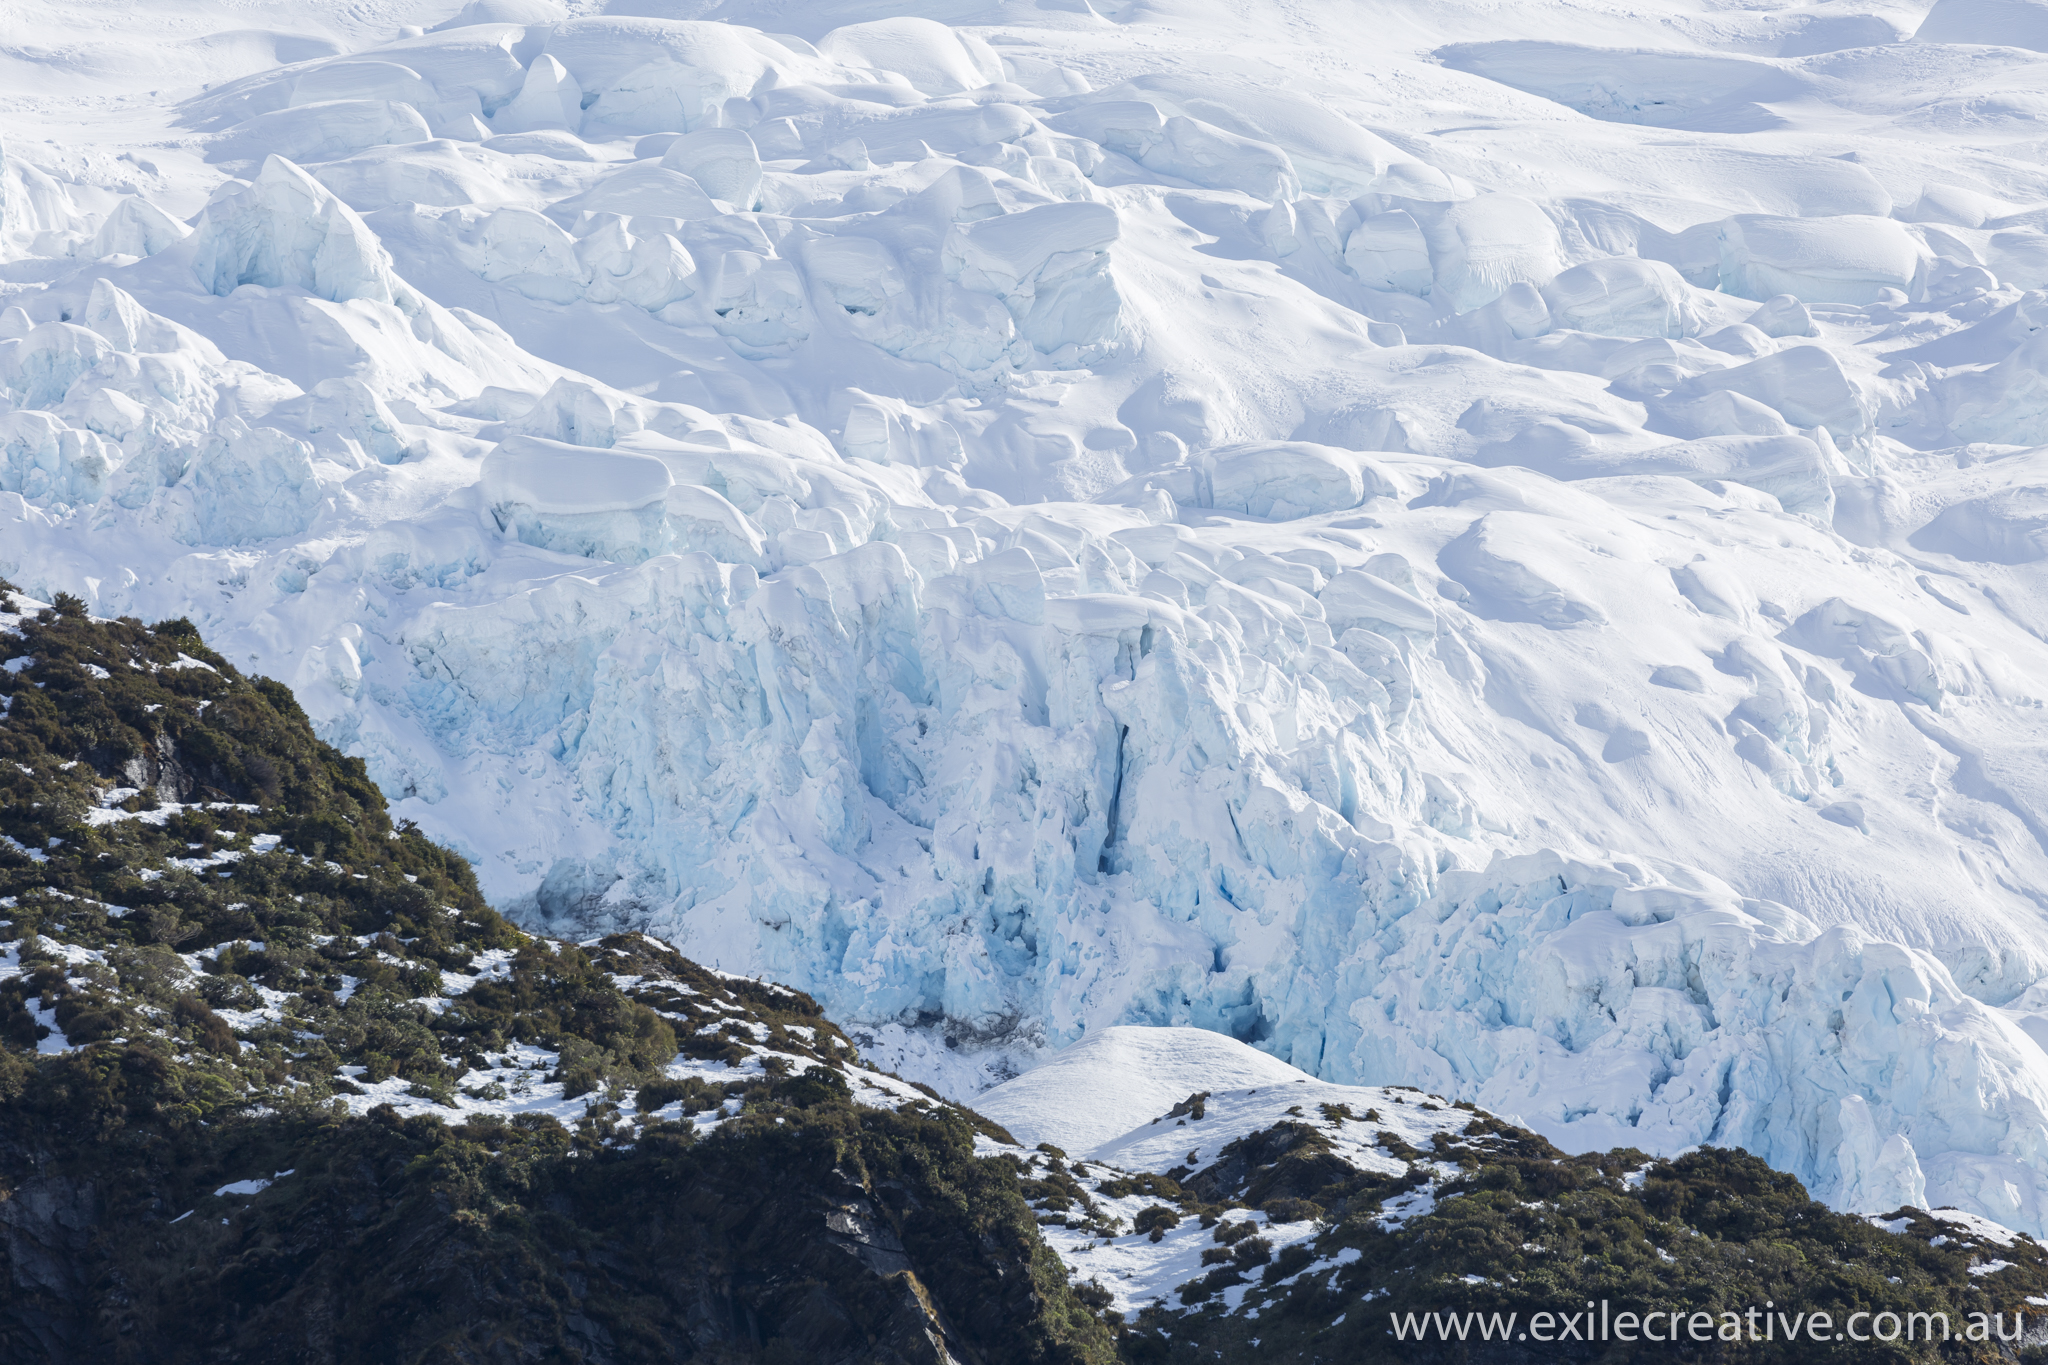 The front end of Rob Roy Glacier breaking over the cliff.  Canon 5Dmiii, 100-400L ii IS @ 400mm, ISO100, f/8, 1/500s